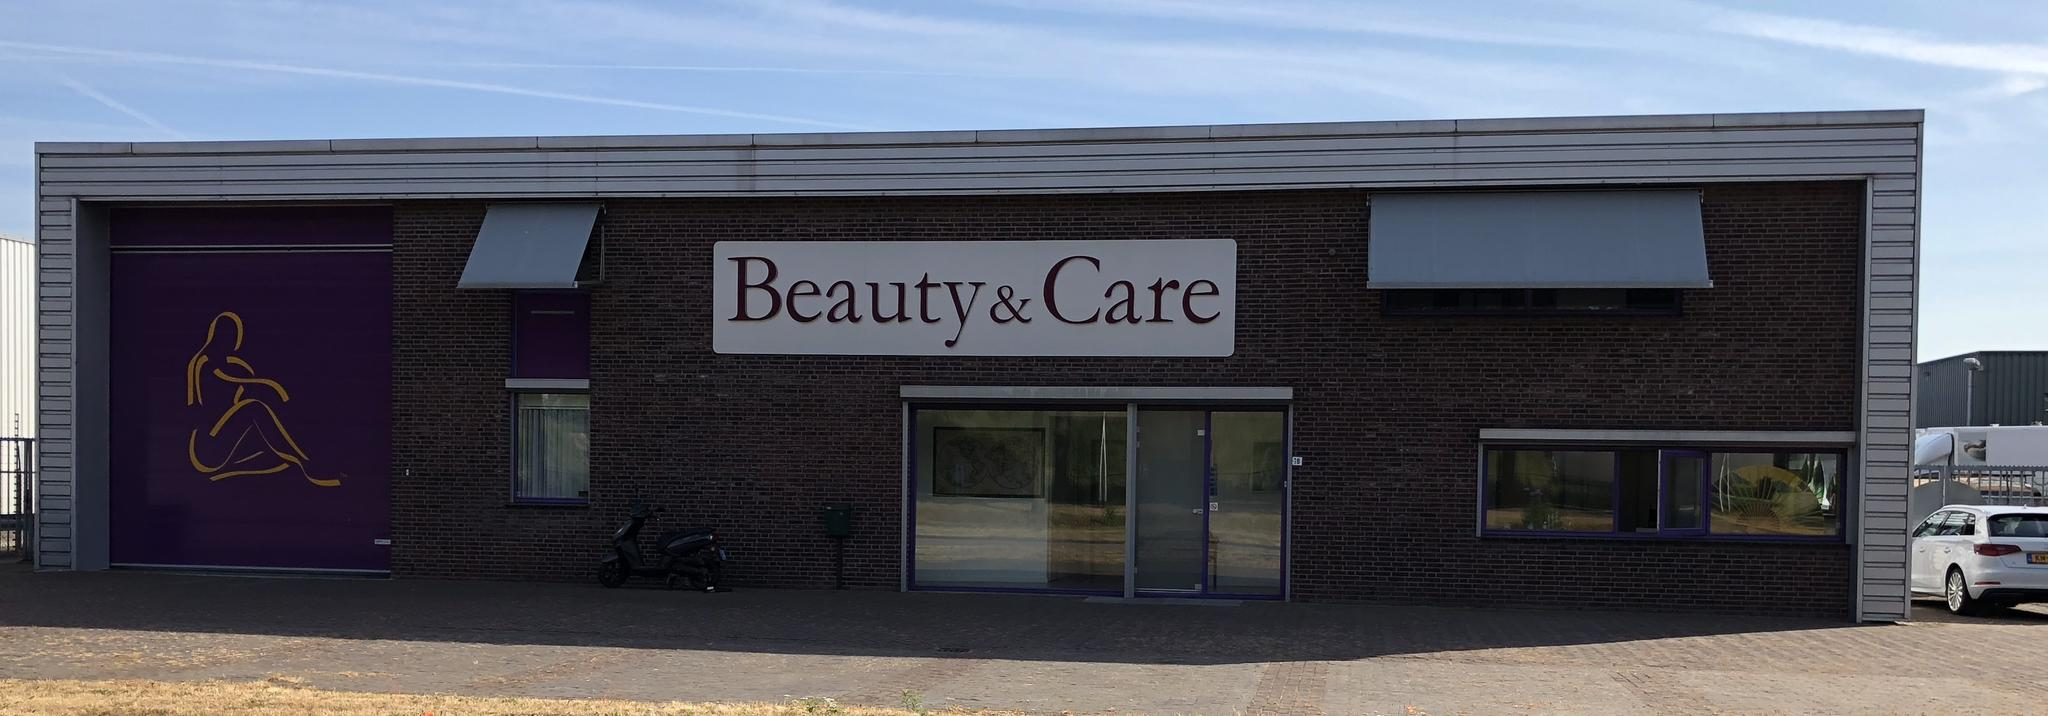 Beauty & Care vestiging. Hier produceren we al onze wellness producten